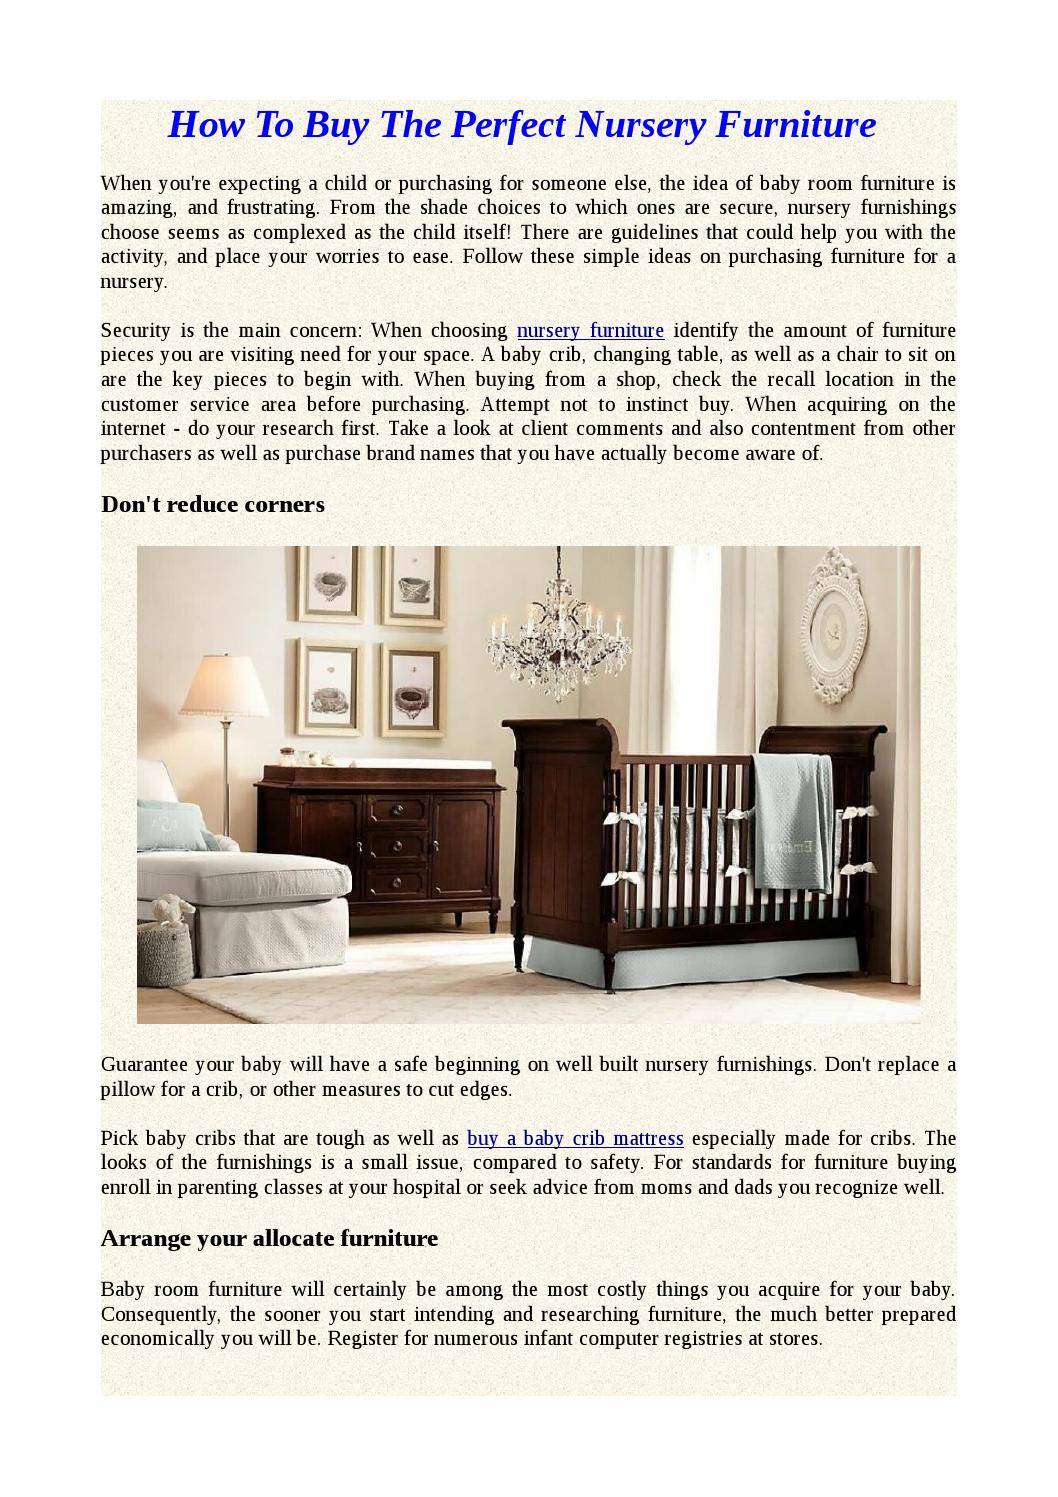 How To Buy The Perfect Nursery Furniture By Loaferchris Issuu